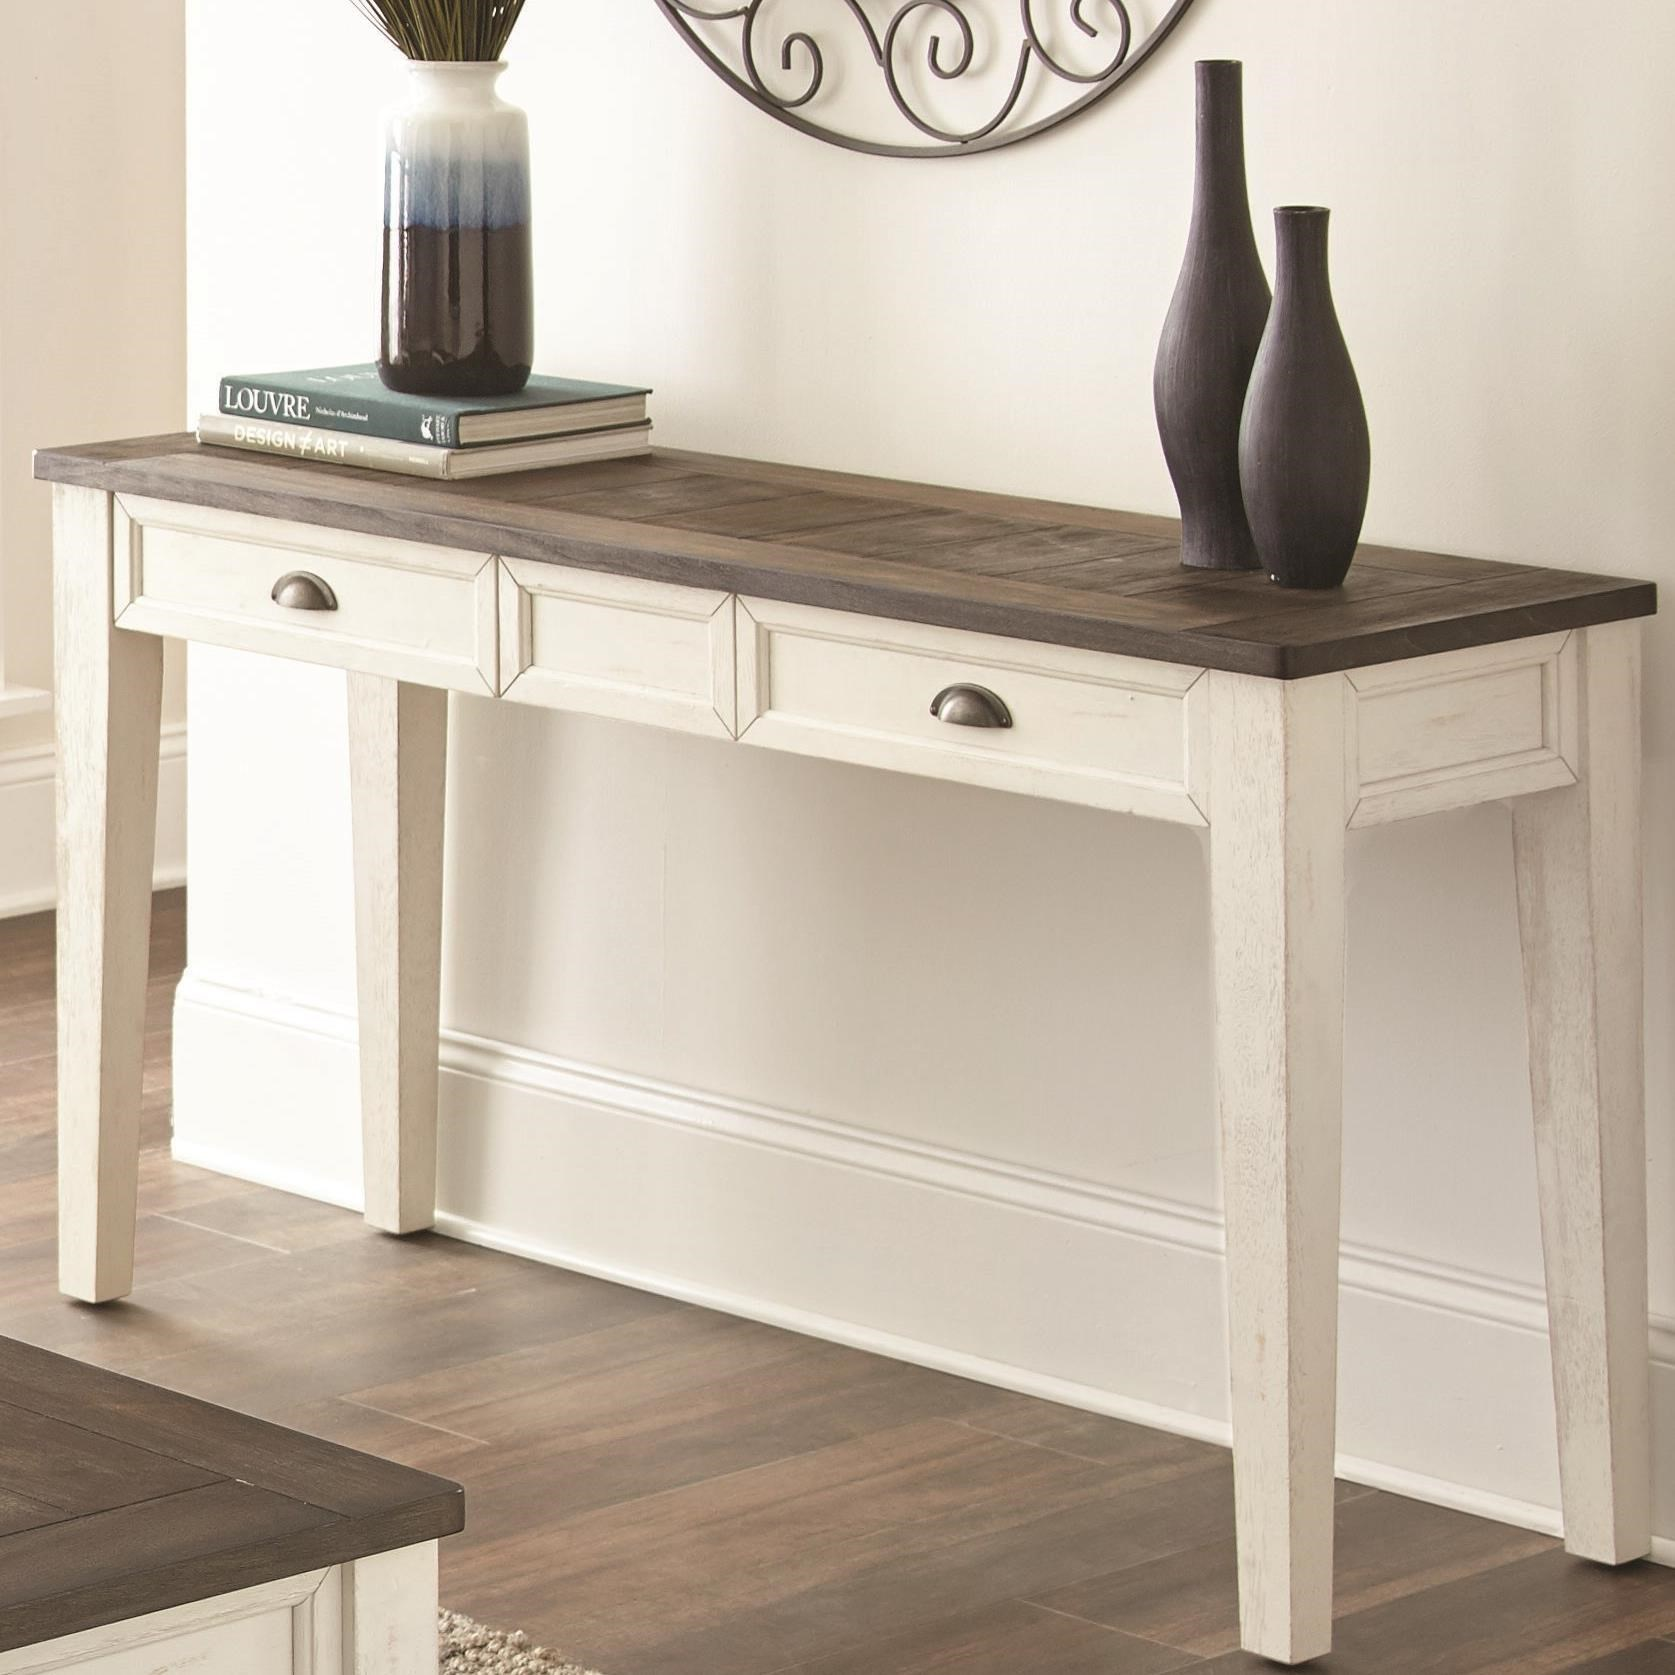 Cayla Sofa Table by Steve Silver at Standard Furniture